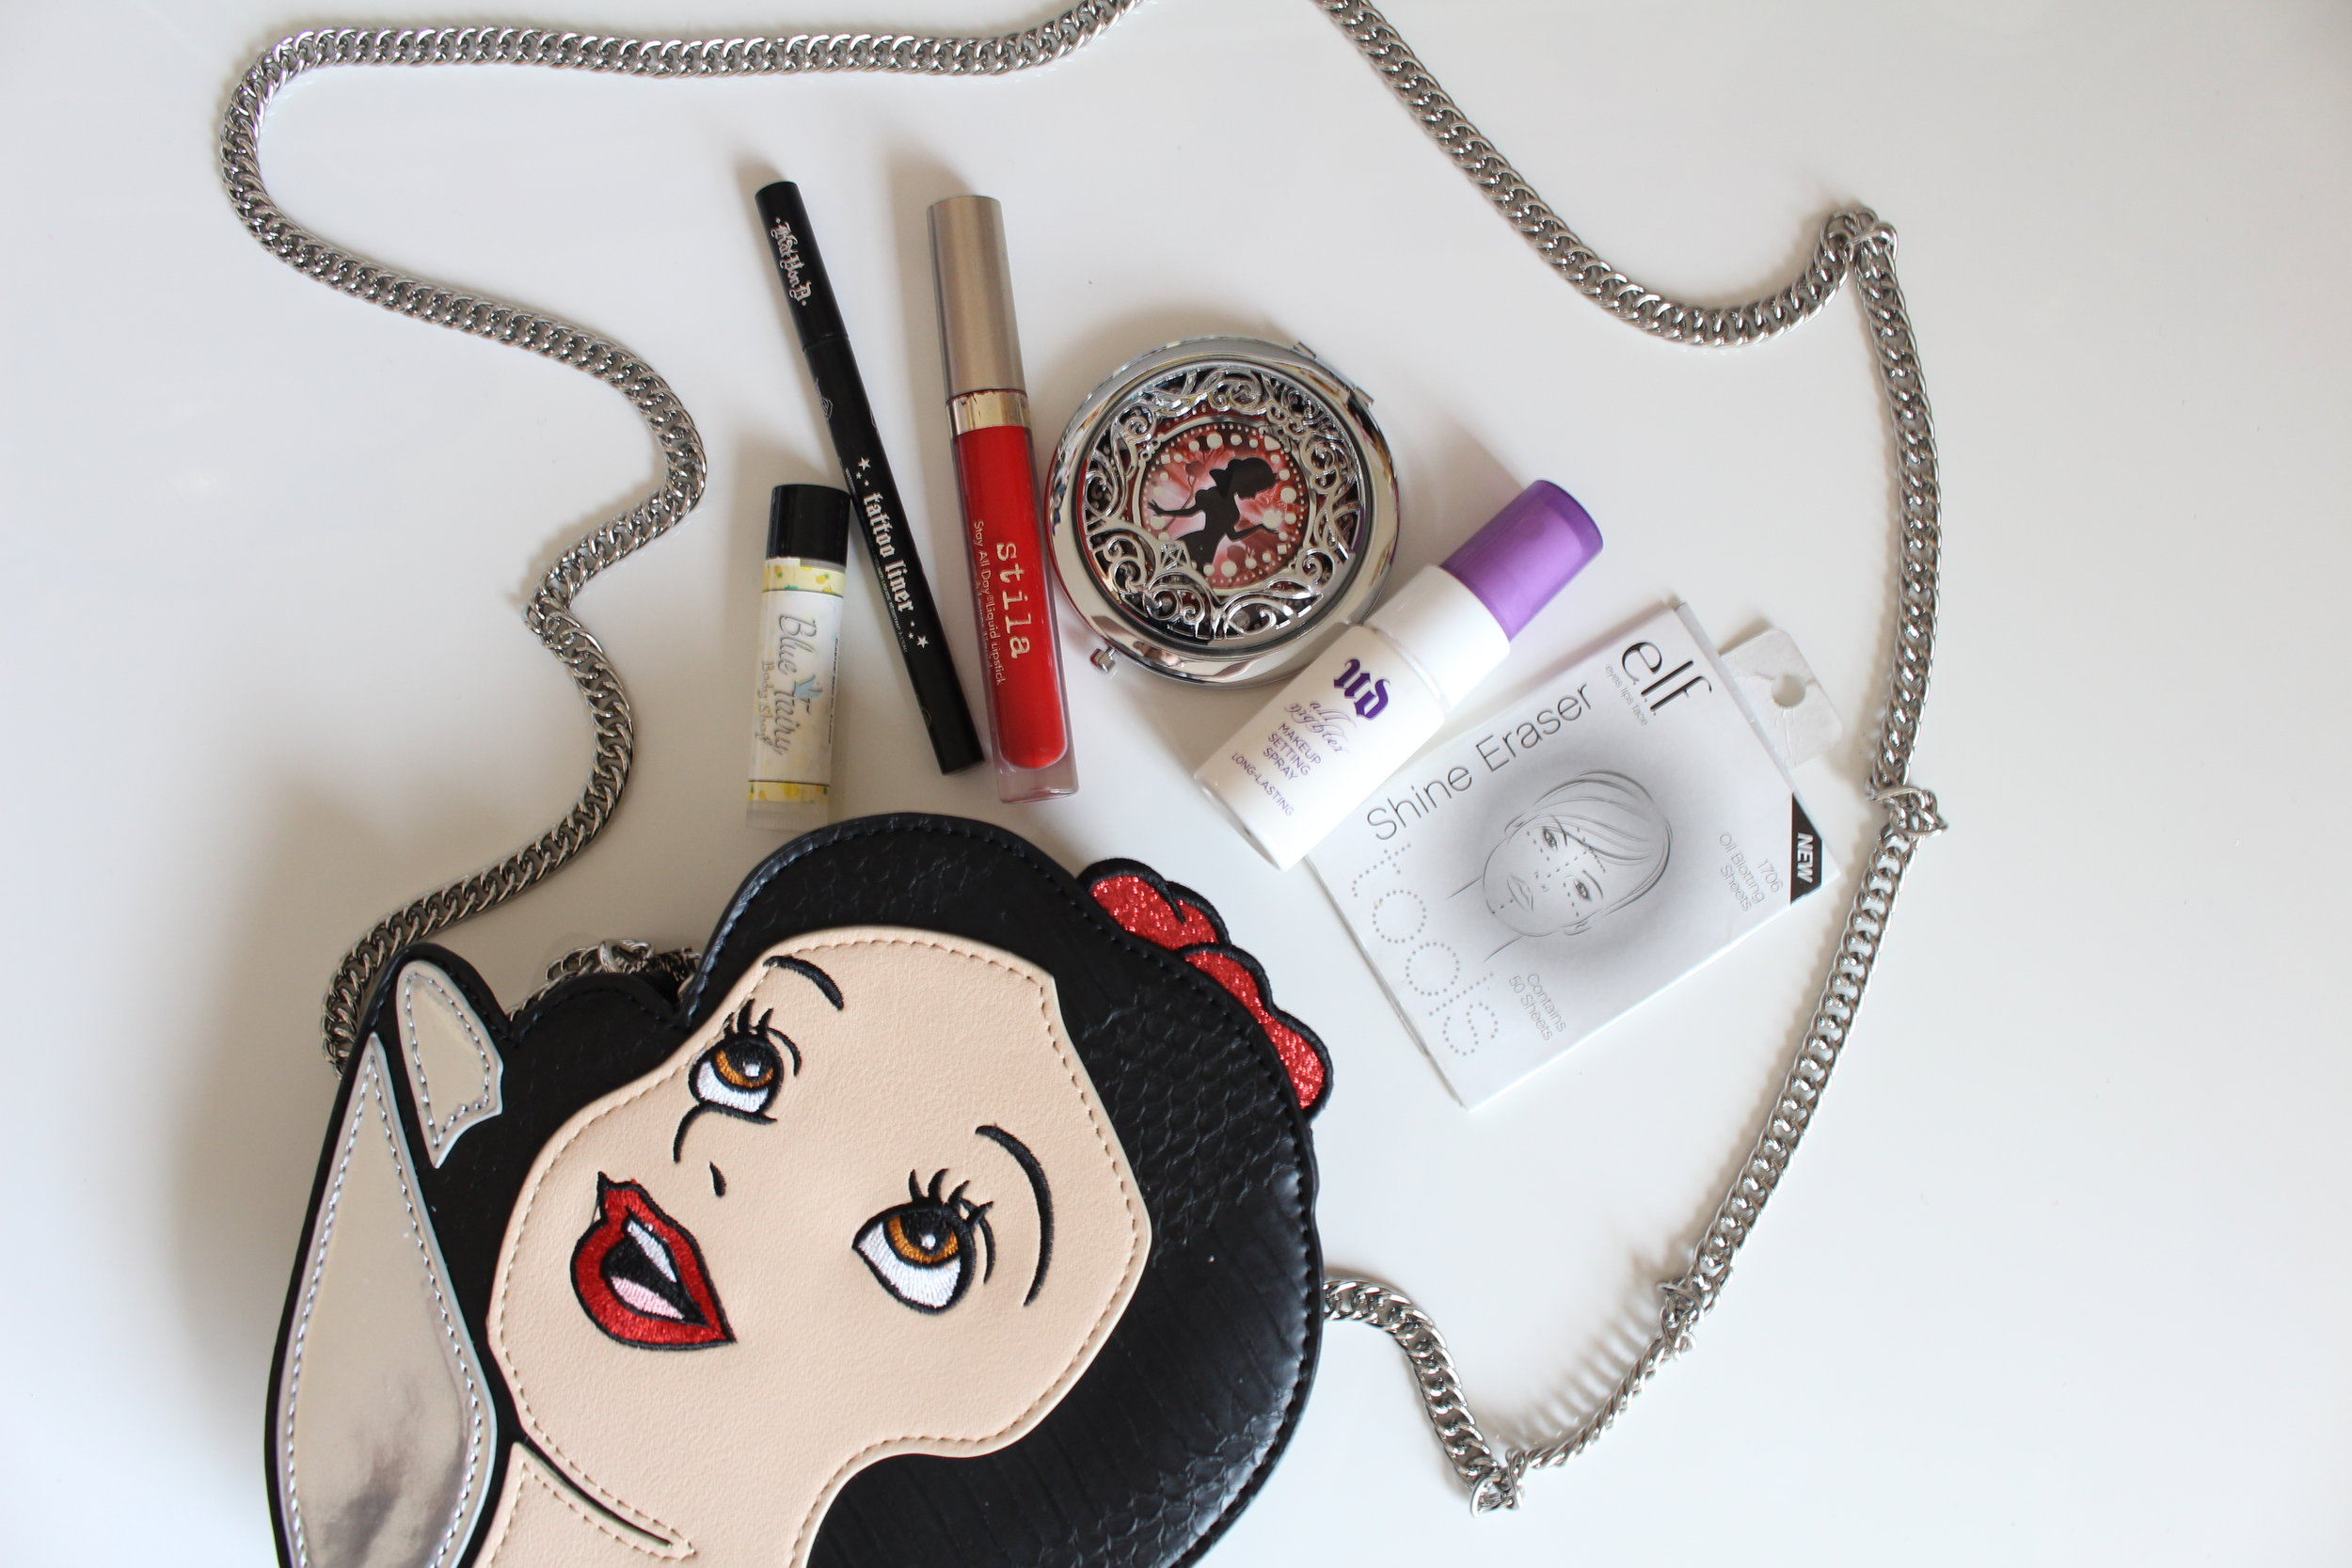 Snow White Purse is from Danielle Nicole Handbags, available   here    Snow White Compact mirror was limited edition from Sephora and is unfortunately no longer sold. :(